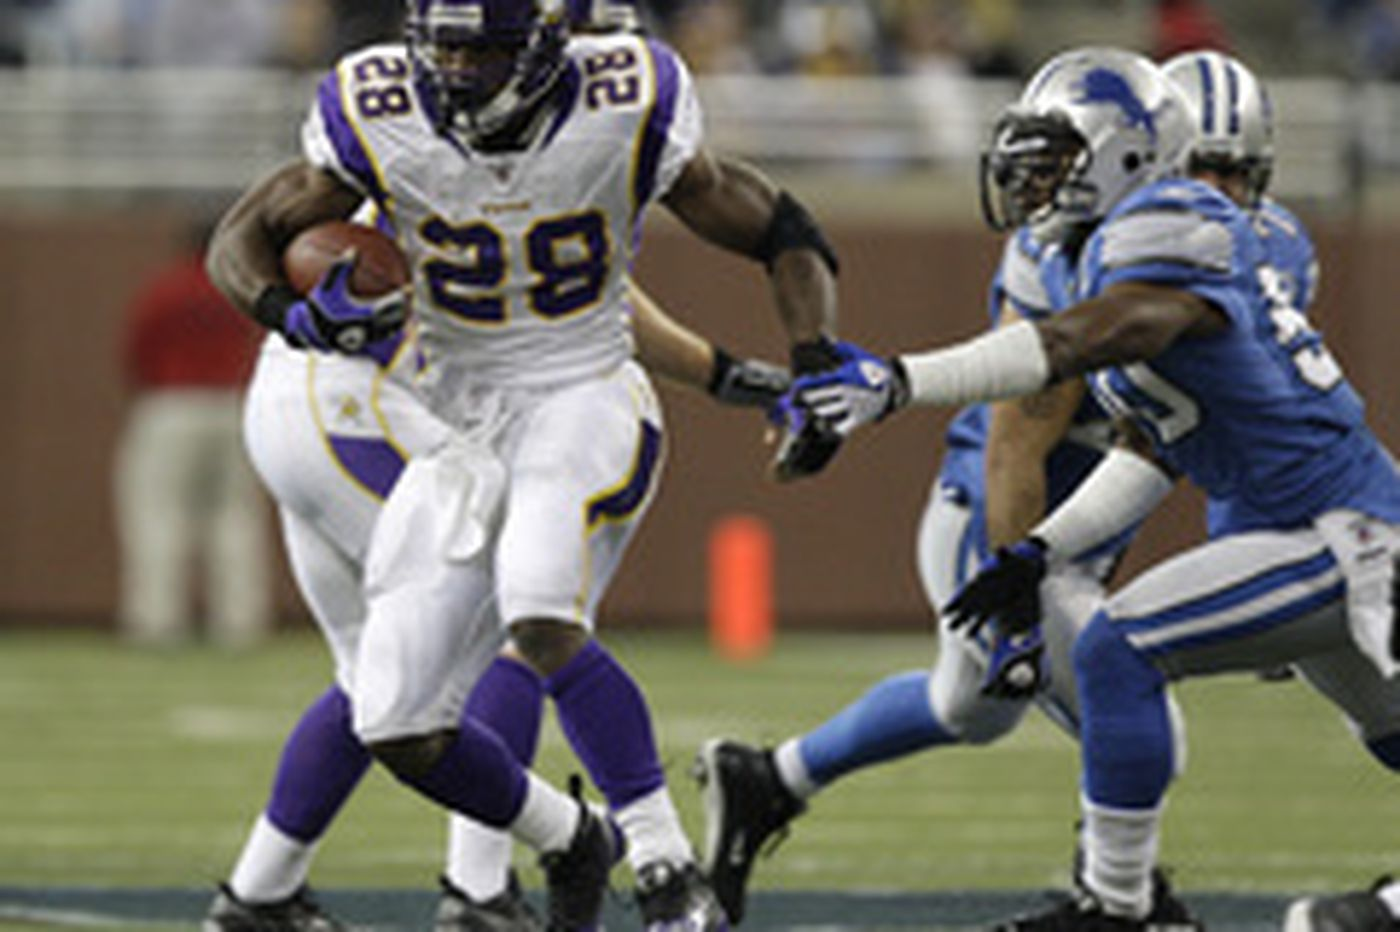 Eagles know they must contain Vikings RB Peterson